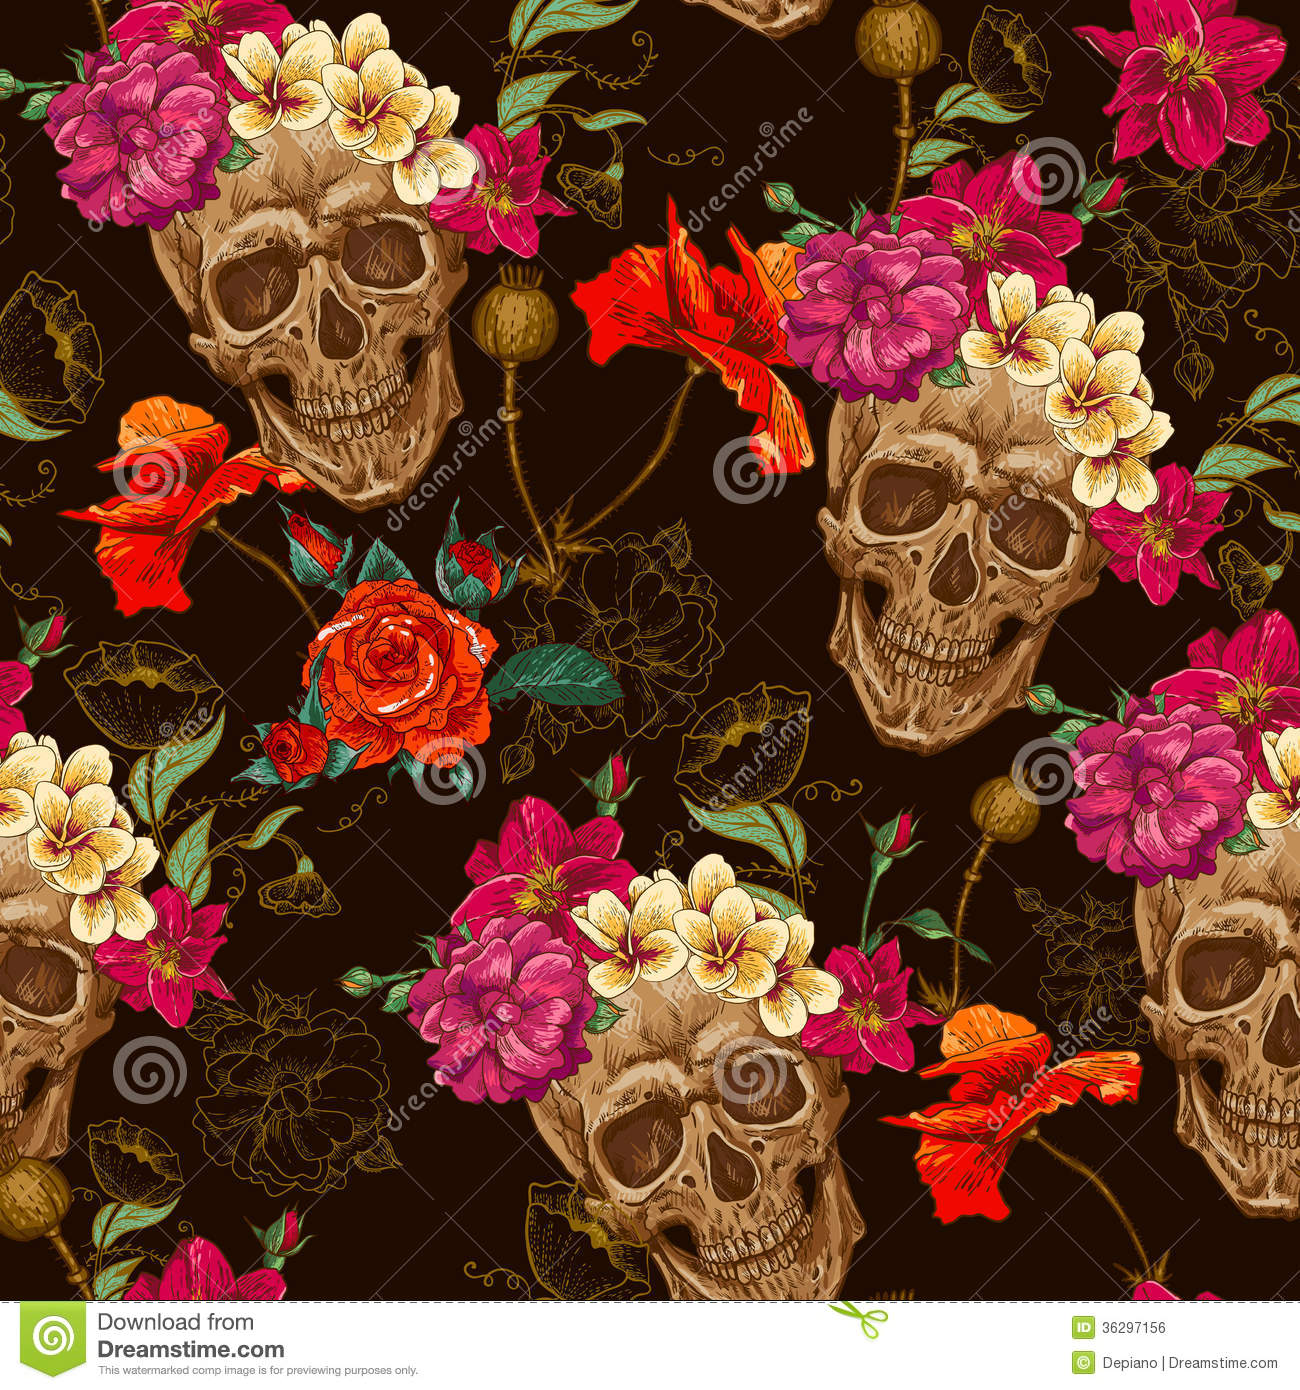 Skull And Flowers Seamless Background Royalty Free Stock Image Image